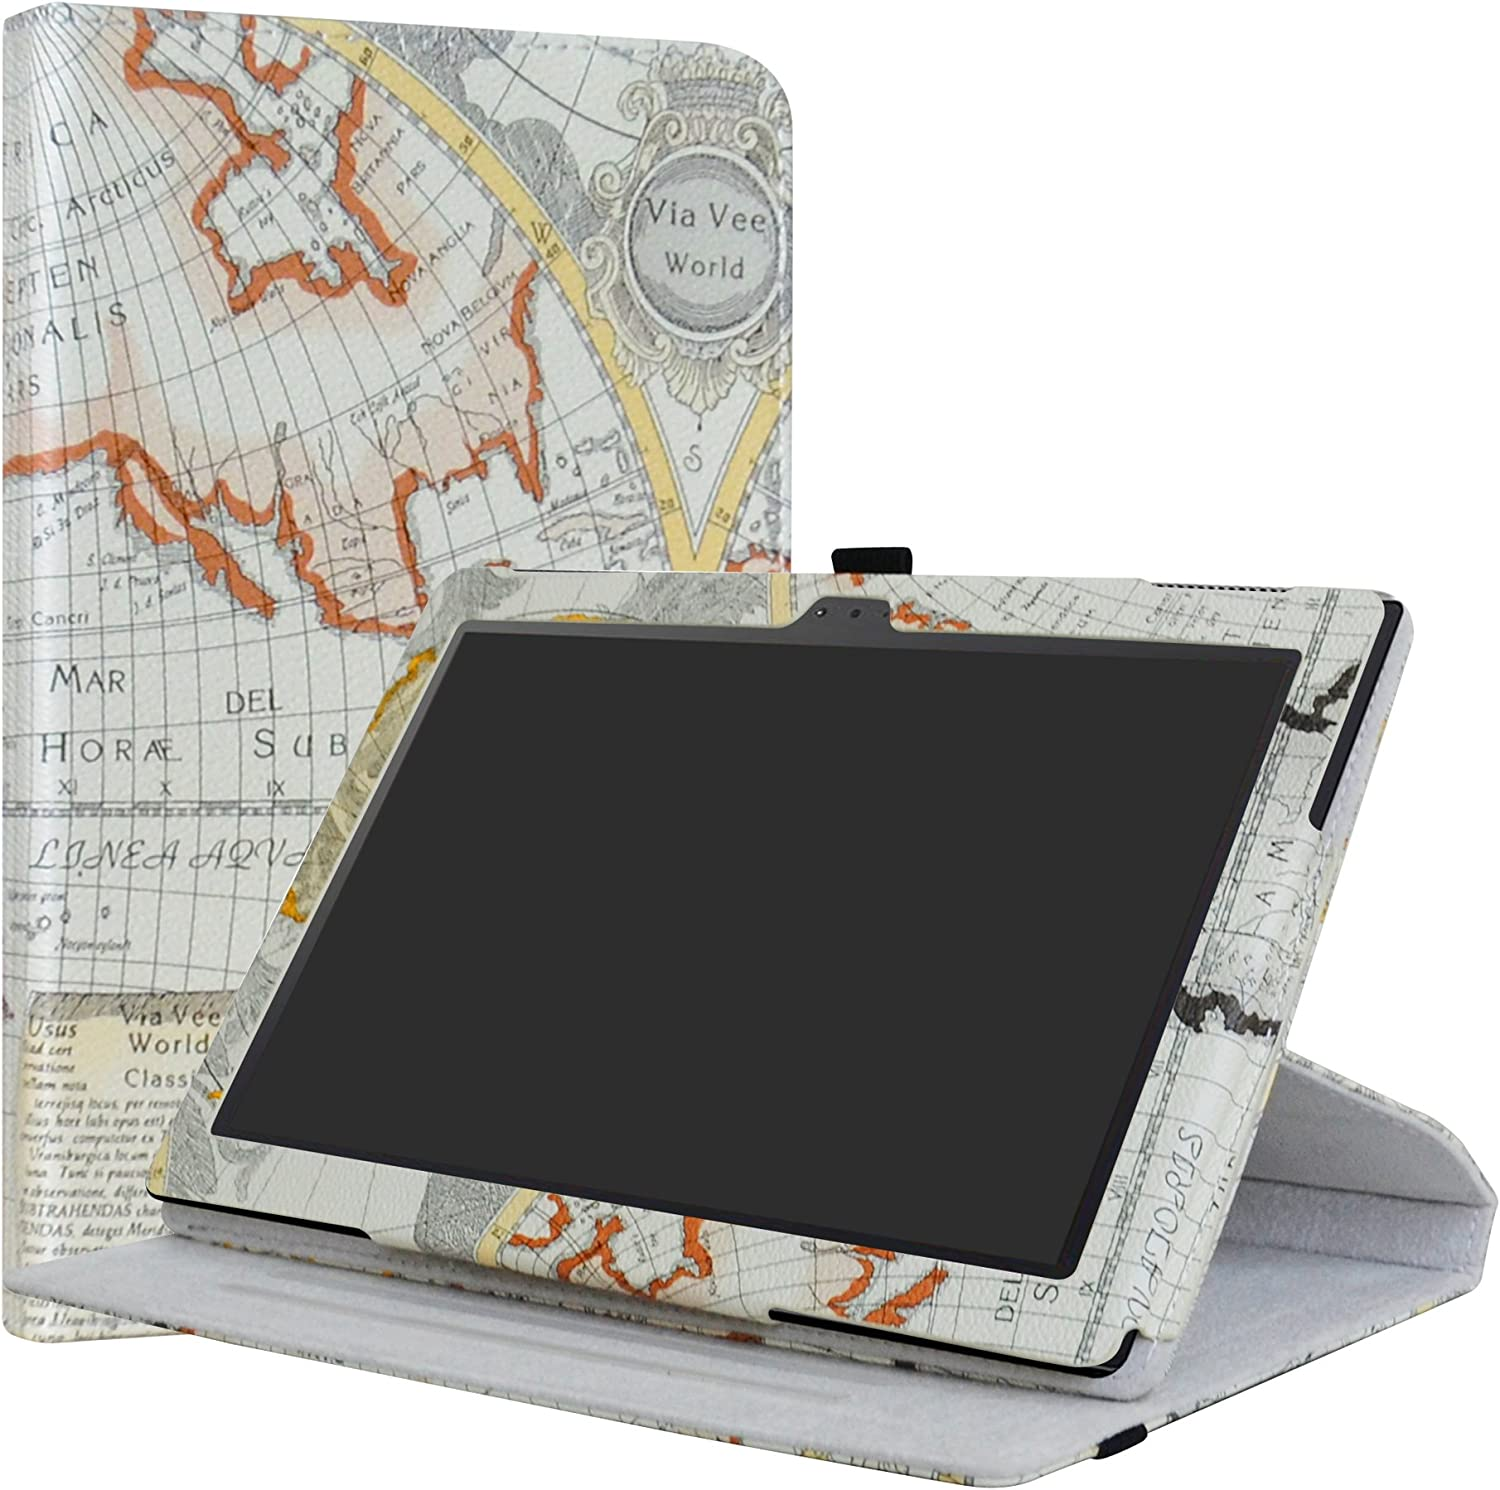 """Lenovo Tab 4 10 Case,LiuShan 360 Degree Rotation Stand PU Leather with Cute Pattern Cover for 10.1"""" Lenovo Tab 4-10 Inch (Not fit Lenovo Tab 4 10 Plus) Android Tablet,Map White"""